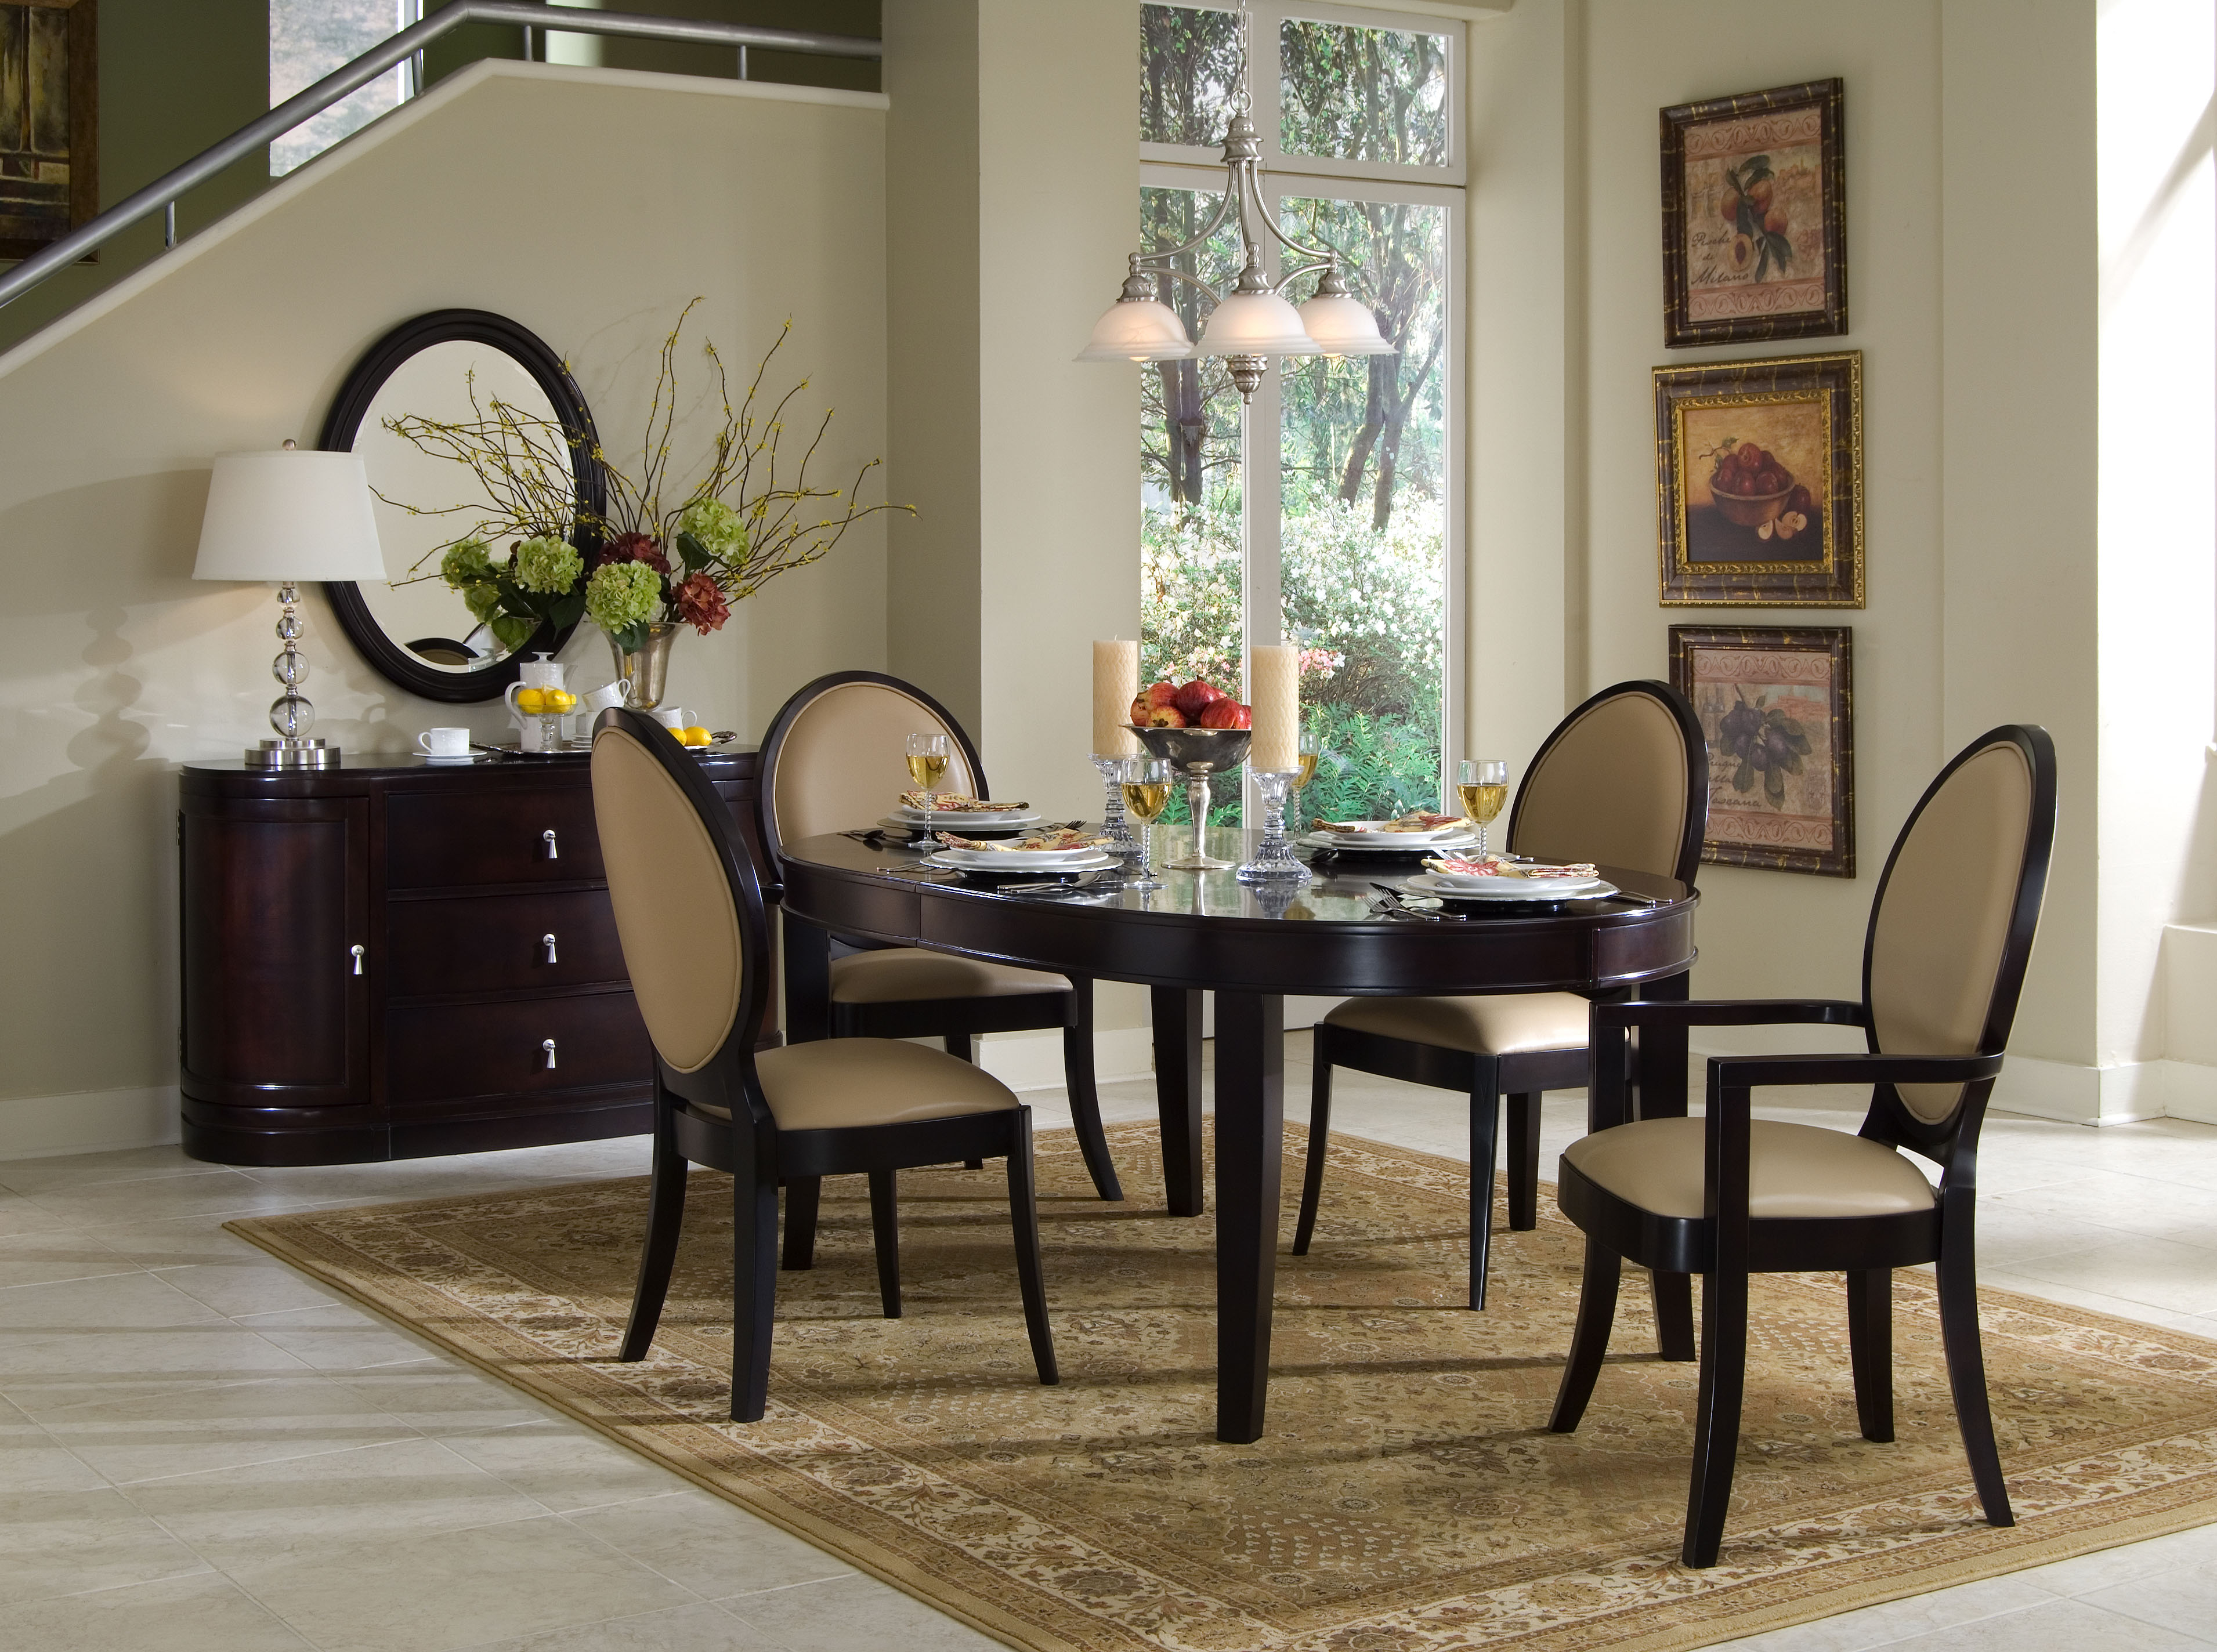 simple brown wooden small oval dining with padded wooden chairs soft beige carpet simple modern dining room white table lamp wall paintings decorative flower and fruit